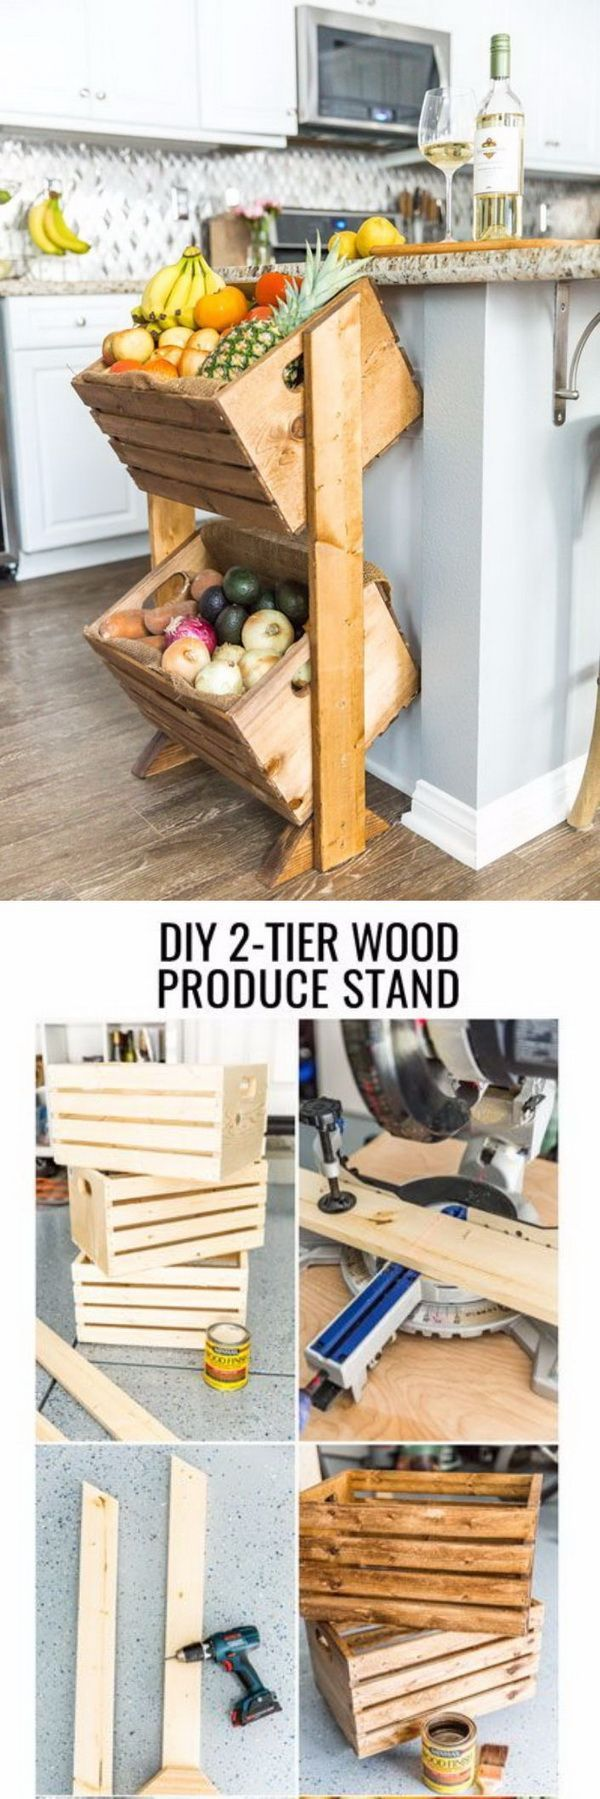 DIY Wood Crate Produce Stand. #homedecorideas